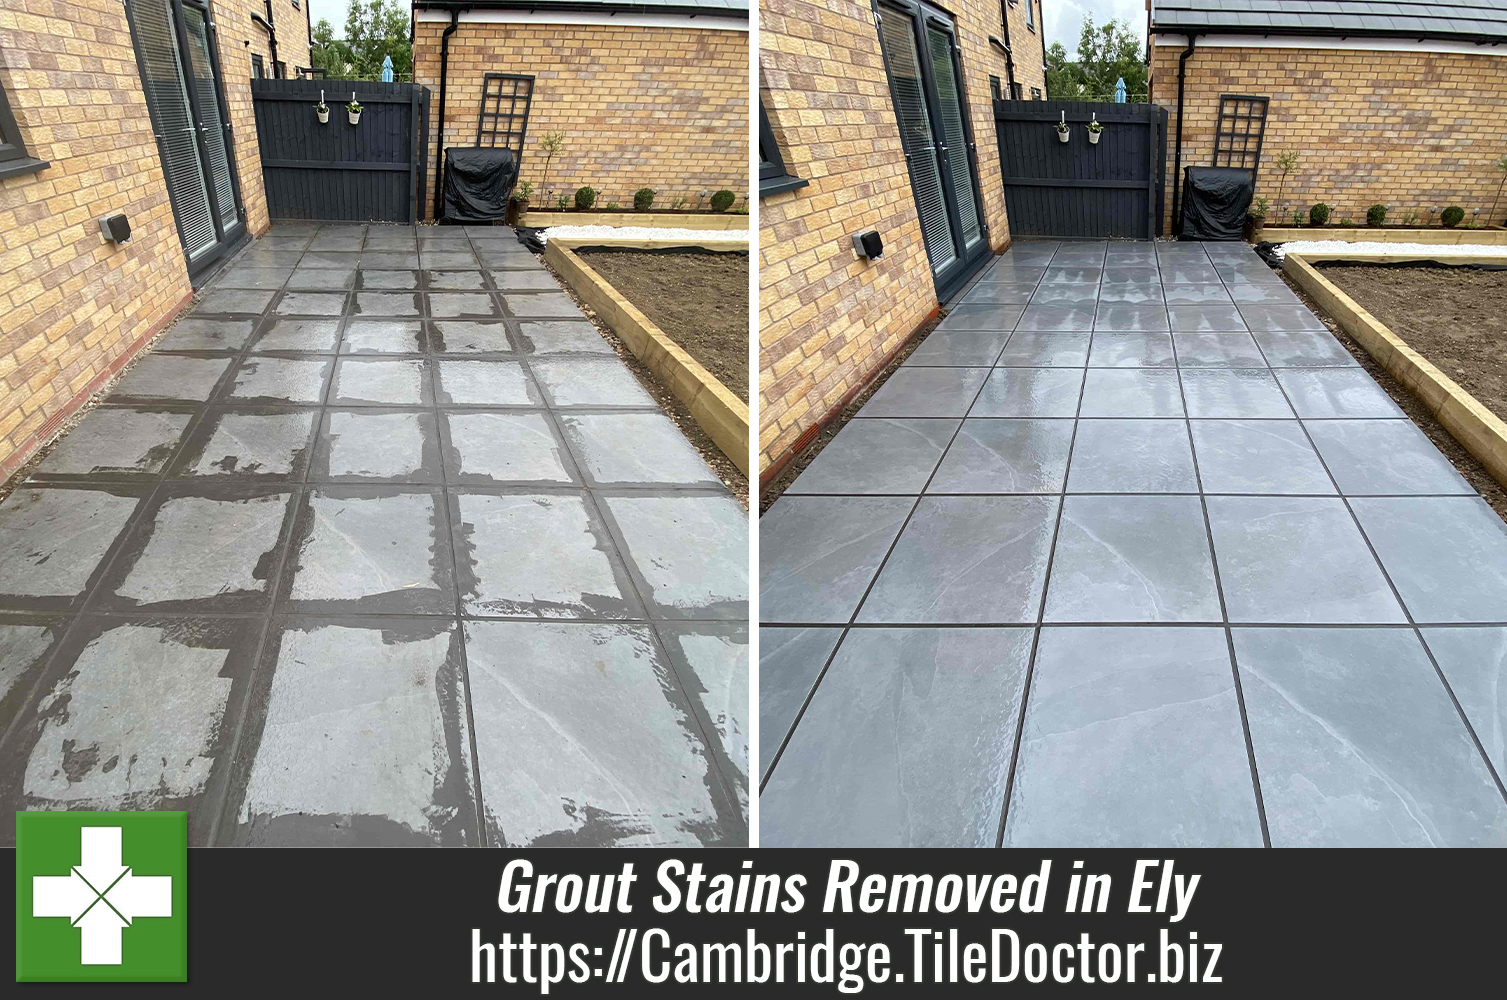 Porcelain-Patio-Grout-Stain-Removal-Ely